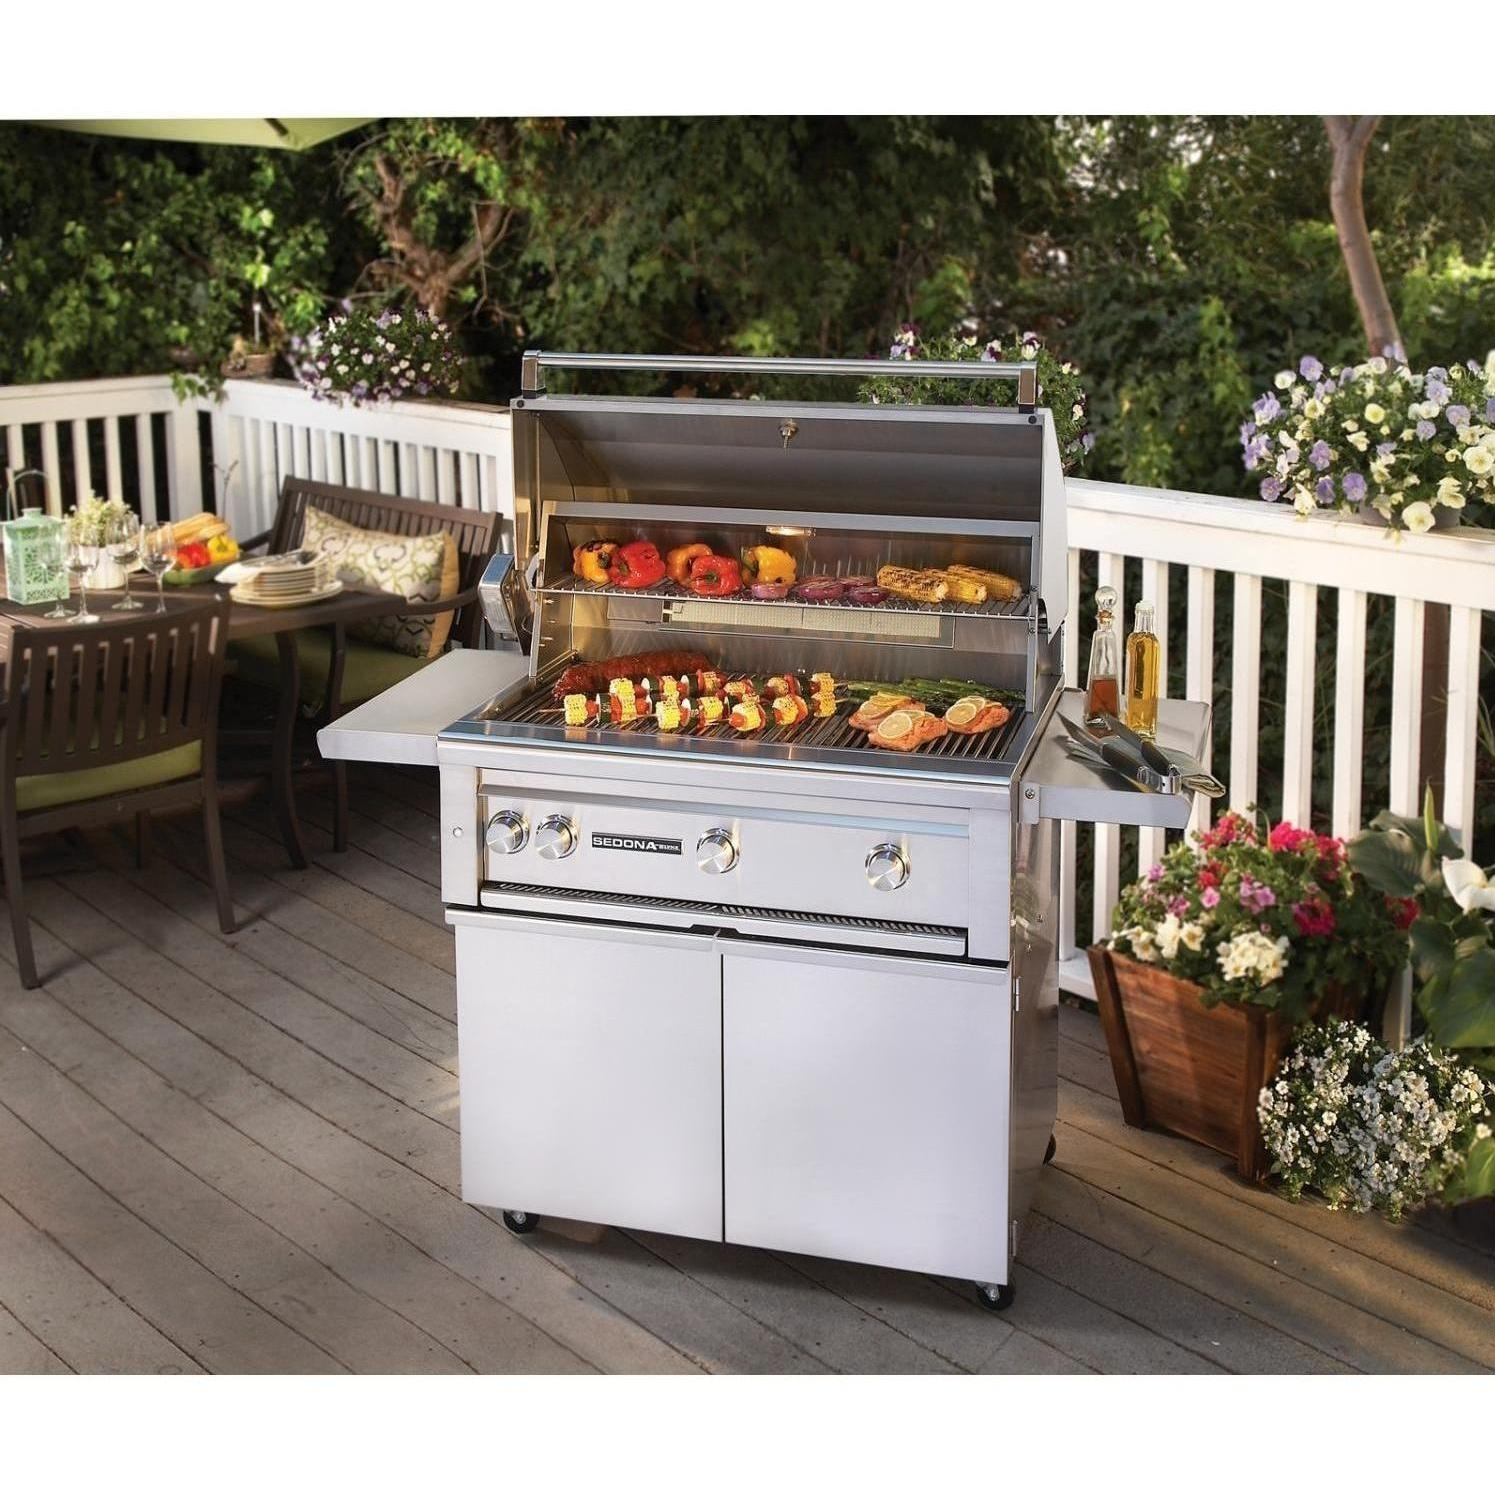 outdoor kitchen with freestanding grill honest coupon lynx sedona 36 inch propane gas bbq the store